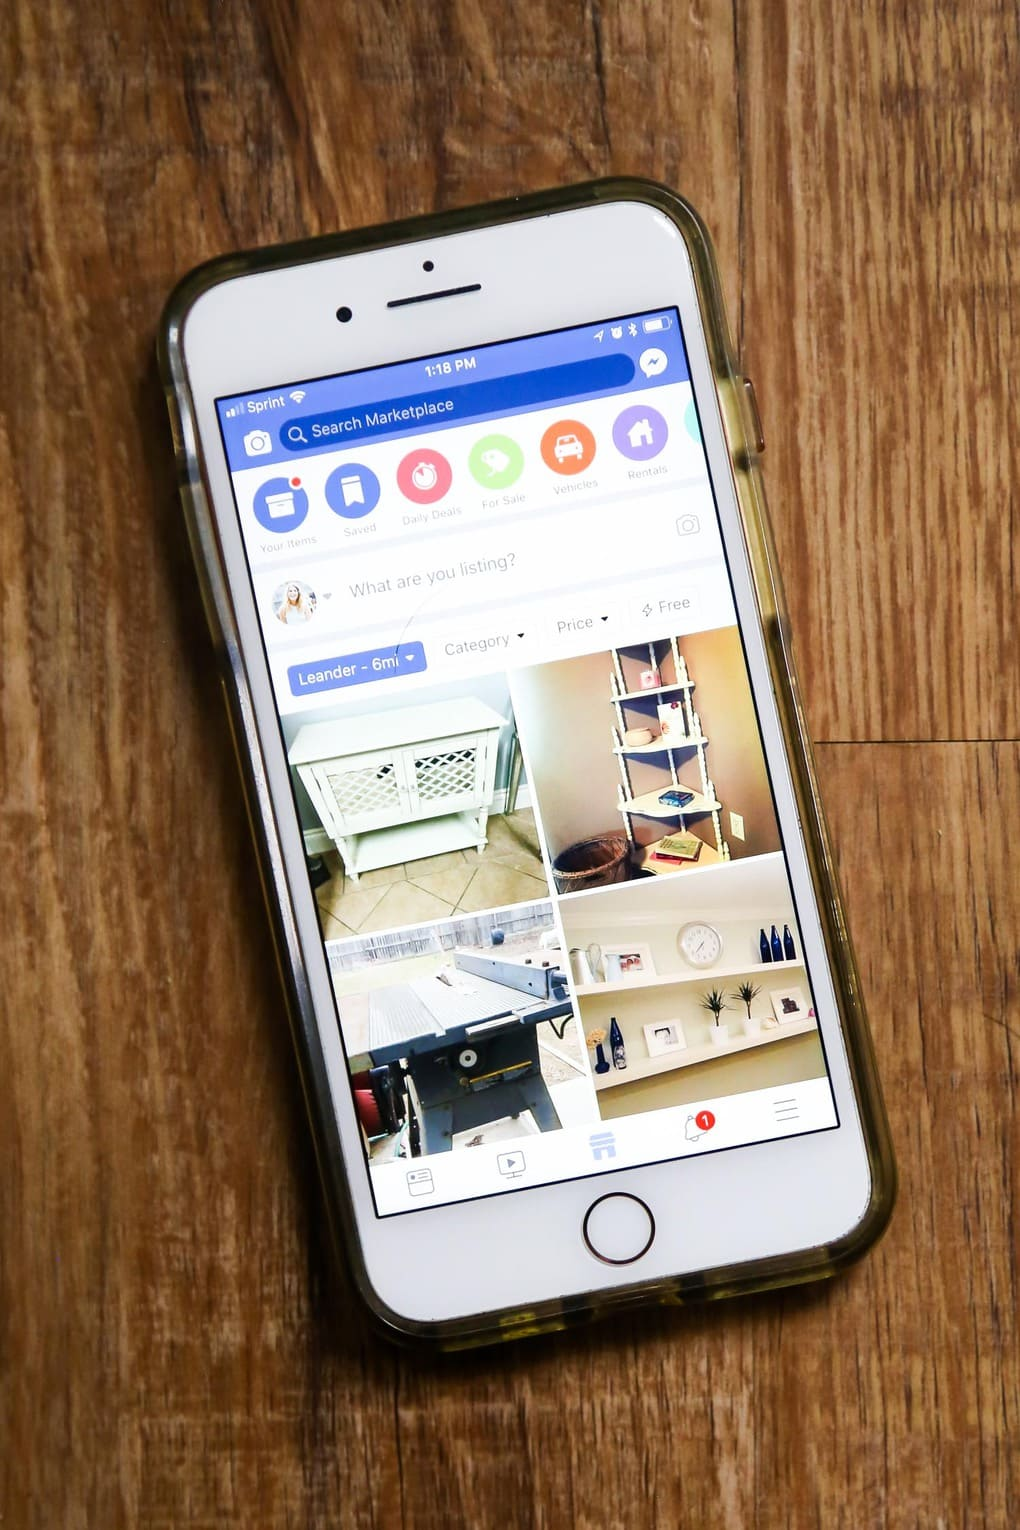 iPhone with Facebook Marketplace pulled up - how to sell furniture online using Facebook Marketplace